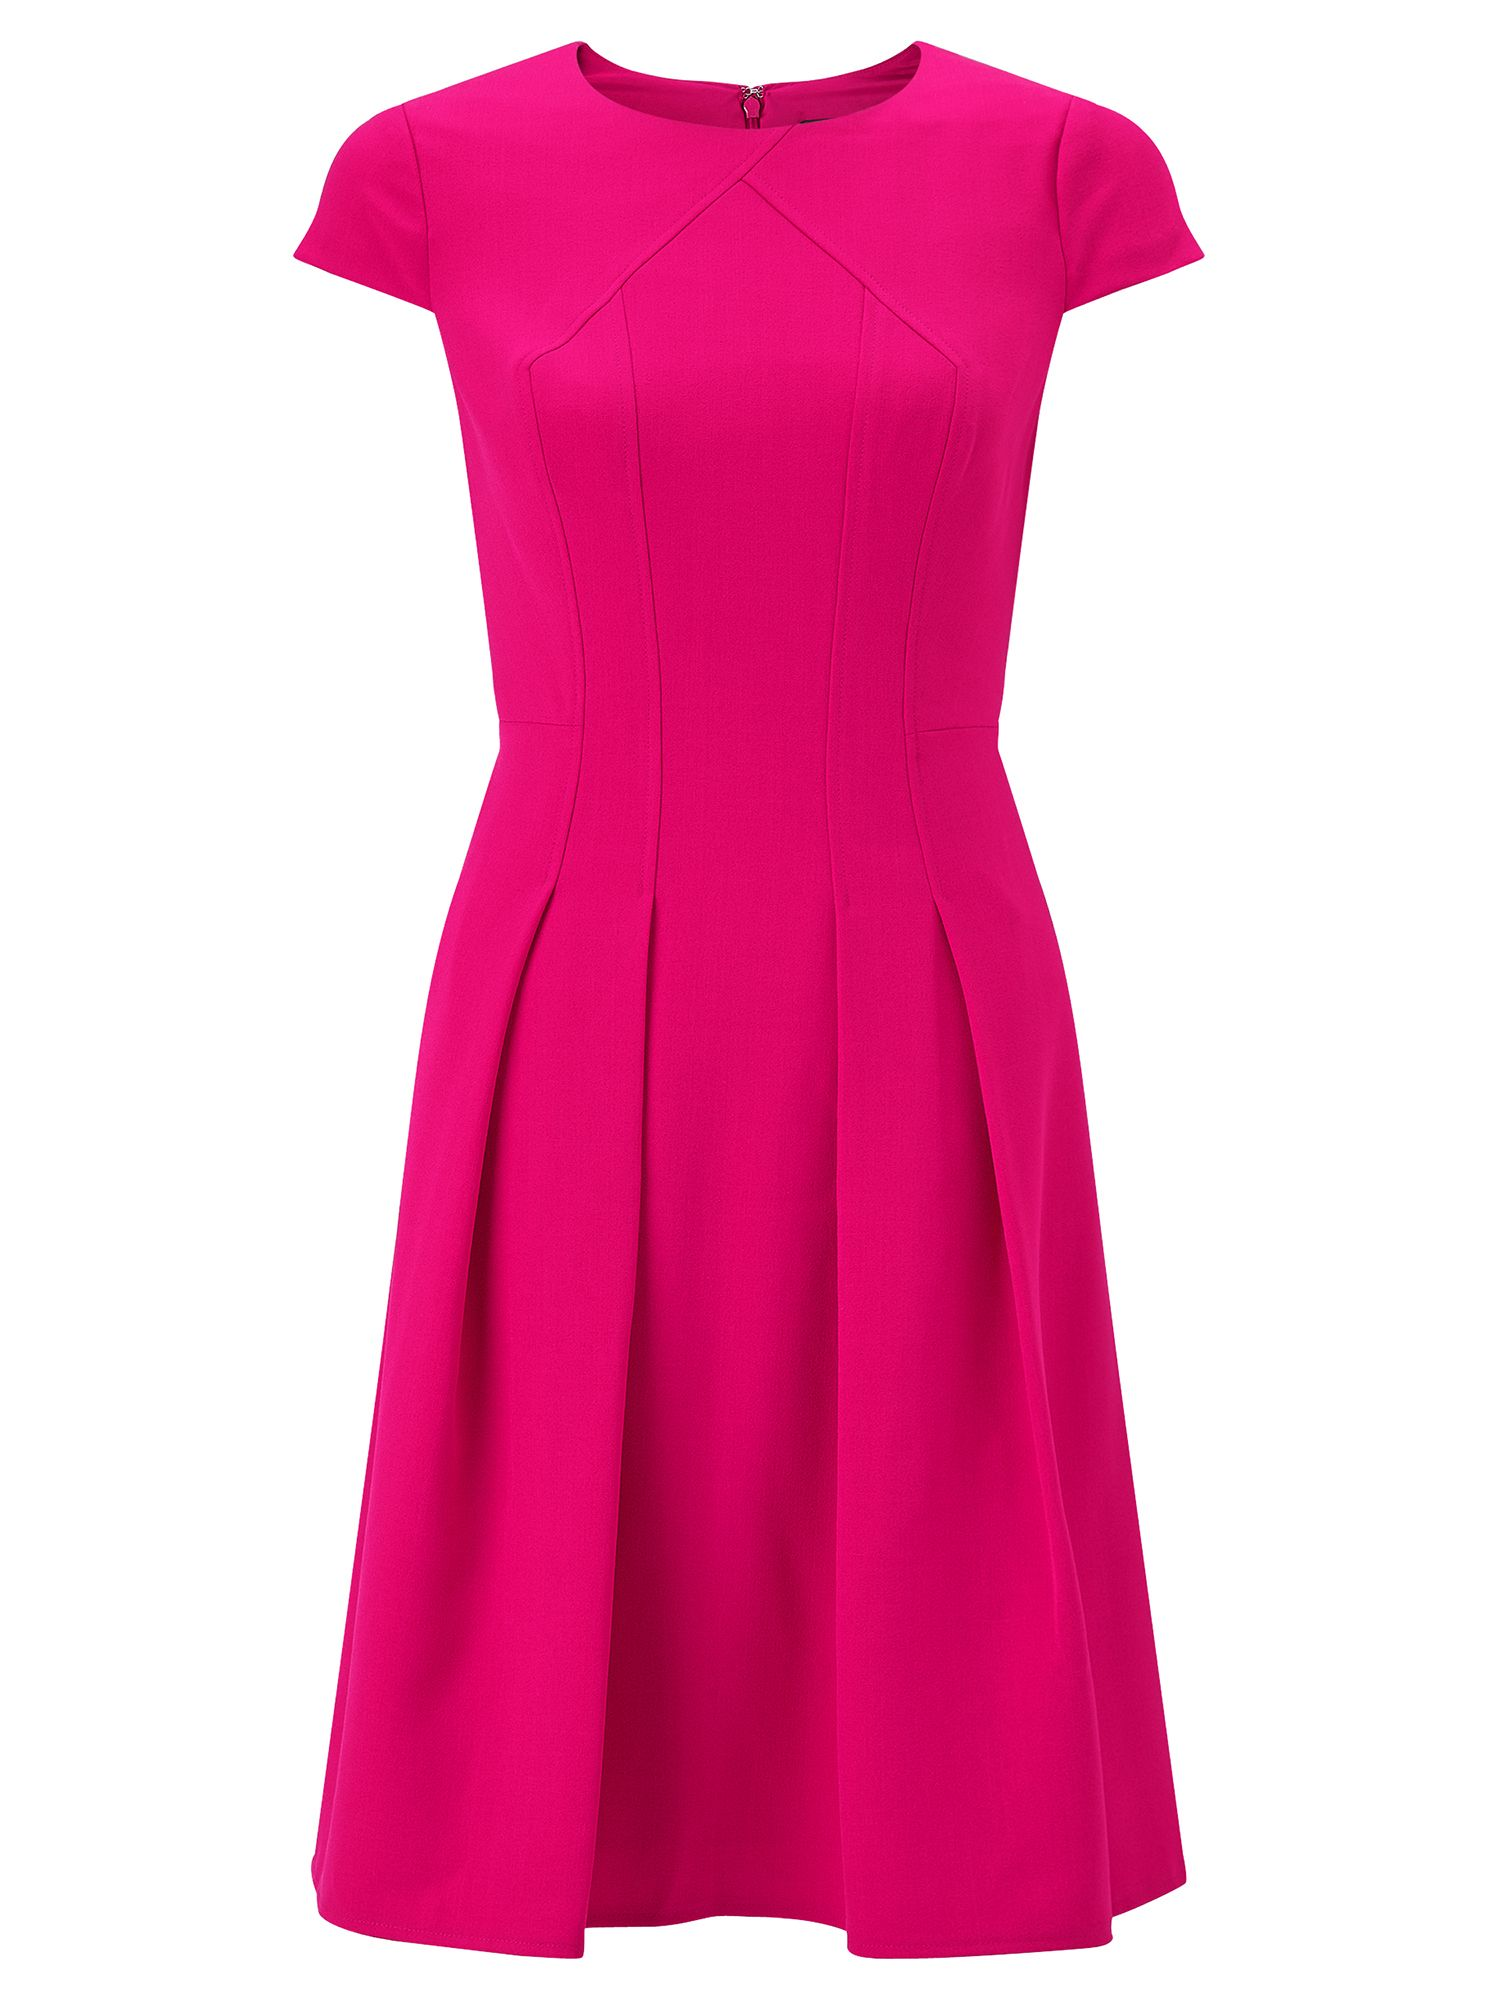 Adrianna Papell Fit and flare dress, Pink